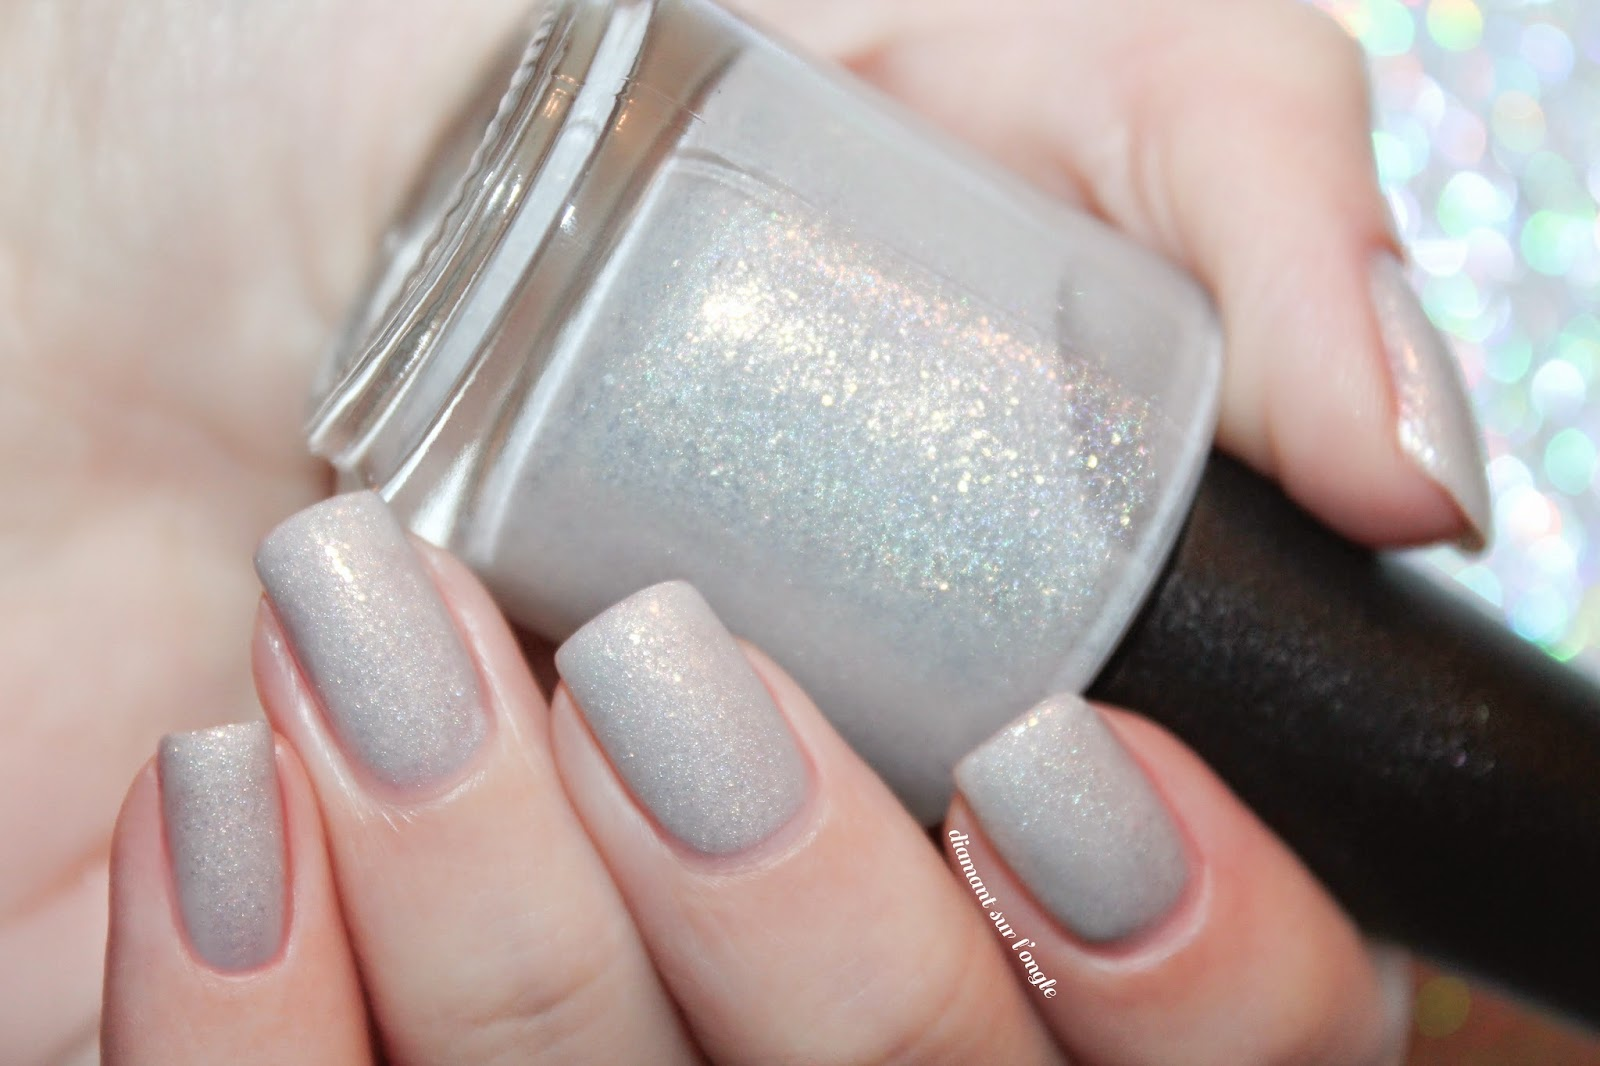 Swatch of Lunar Lights by Lilypad Lacquer